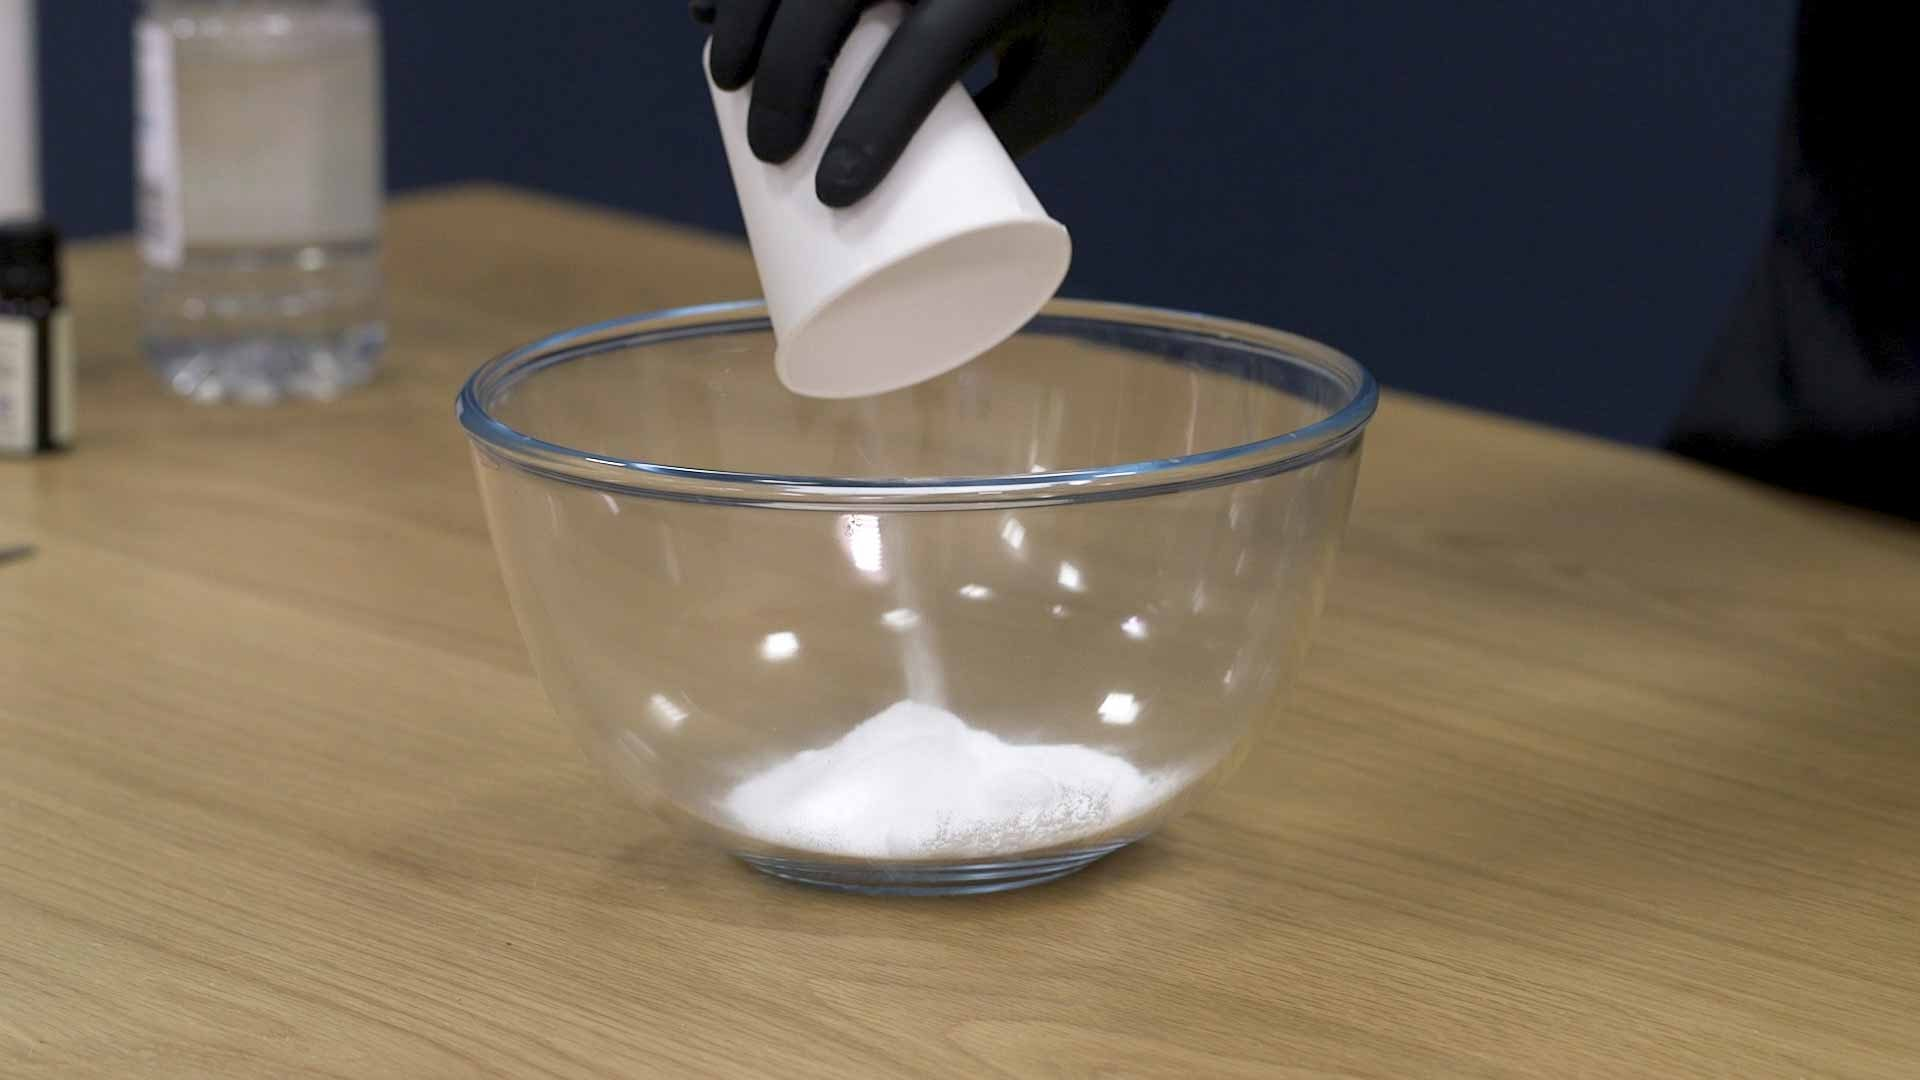 Adding baking soda